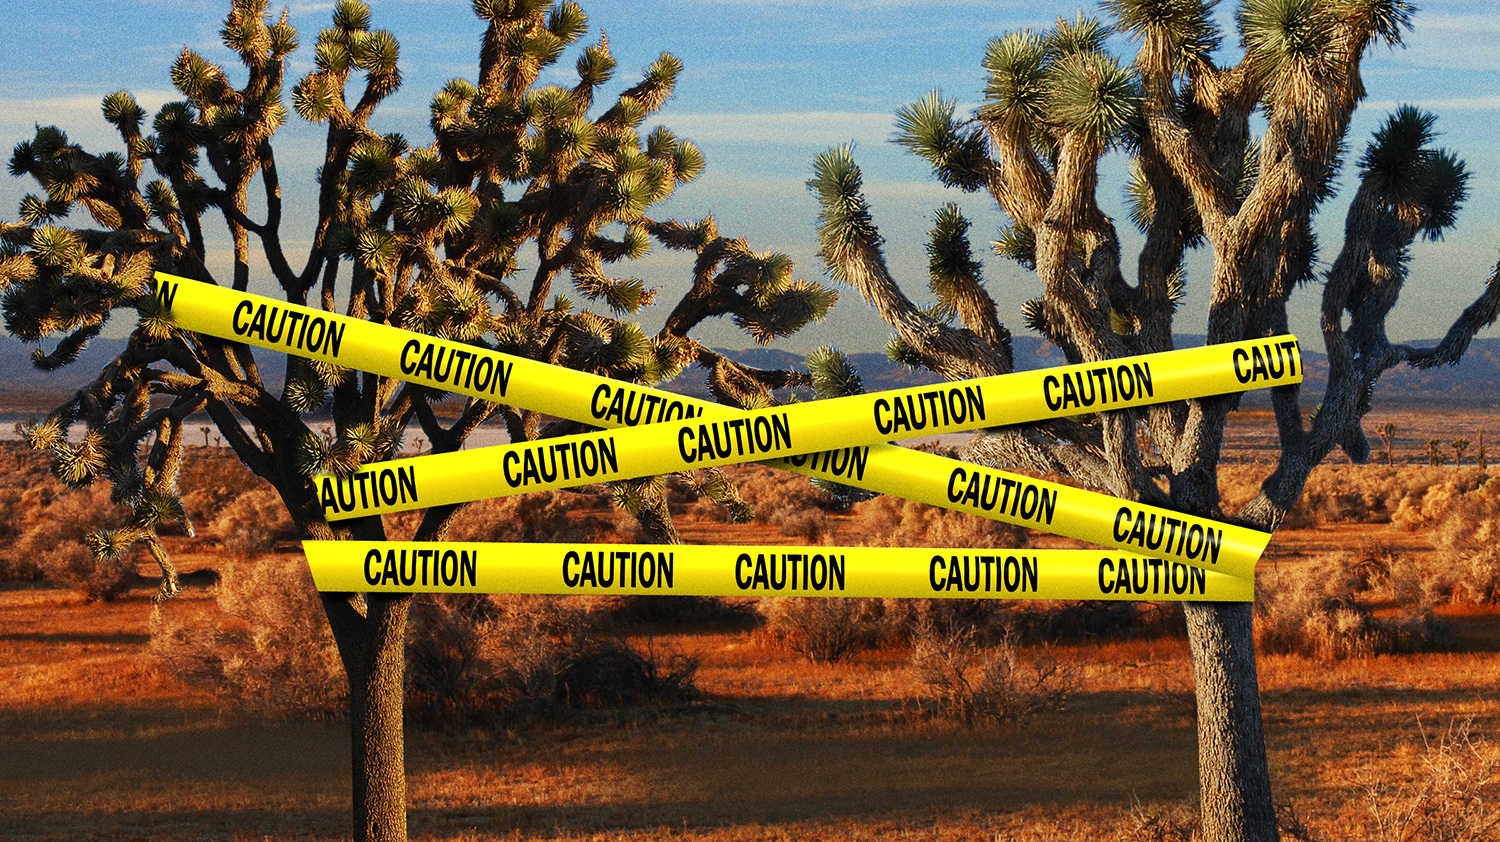 Murder in the Mojave: Homicides and Body Dumps in the California Desert - VICE